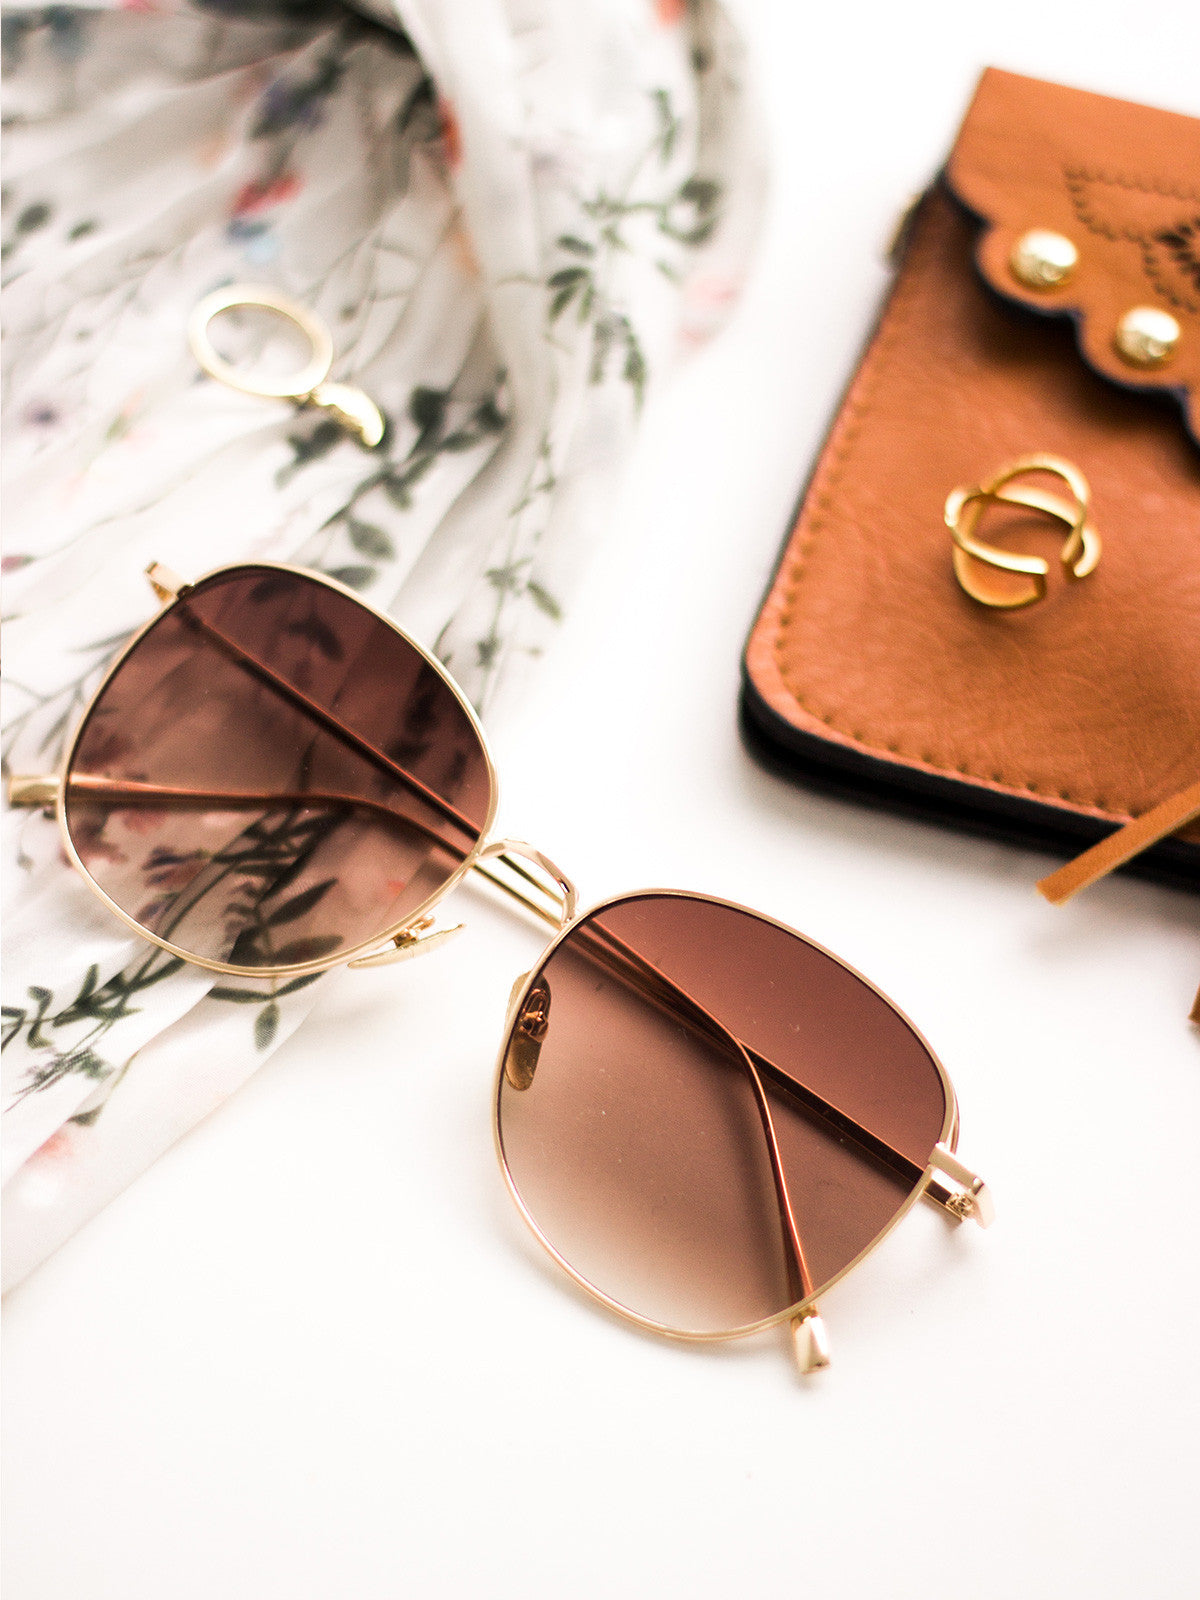 WILD AND FREE VINTAGE GOLD SUNGLASSES